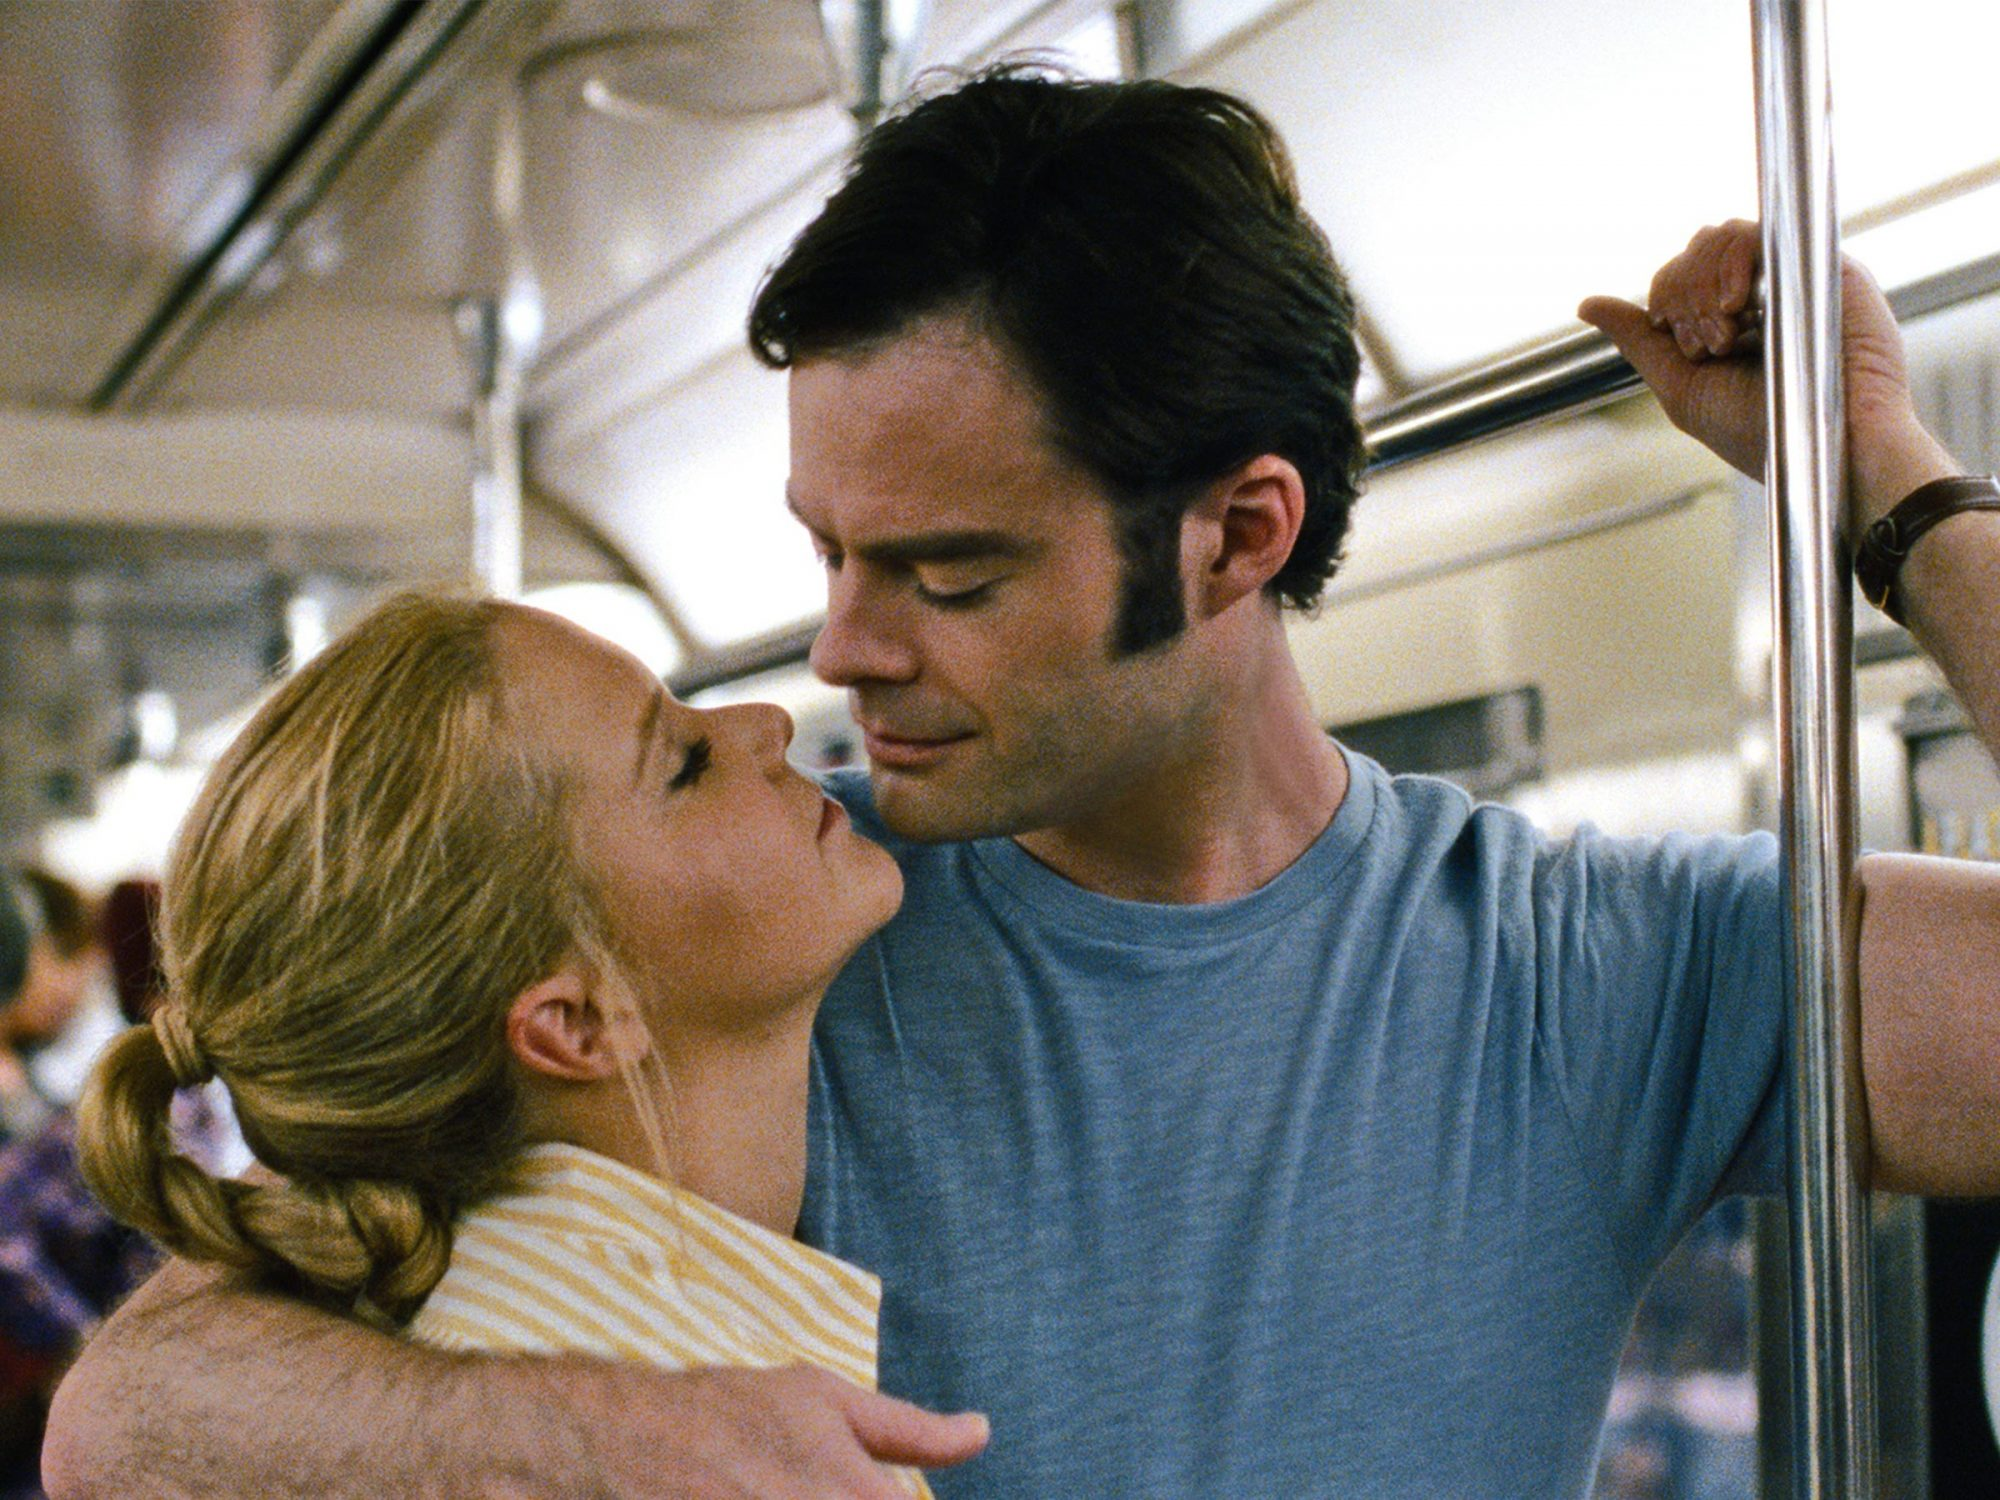 Trainwreck (2015)Amy Schumer and Bill Hader